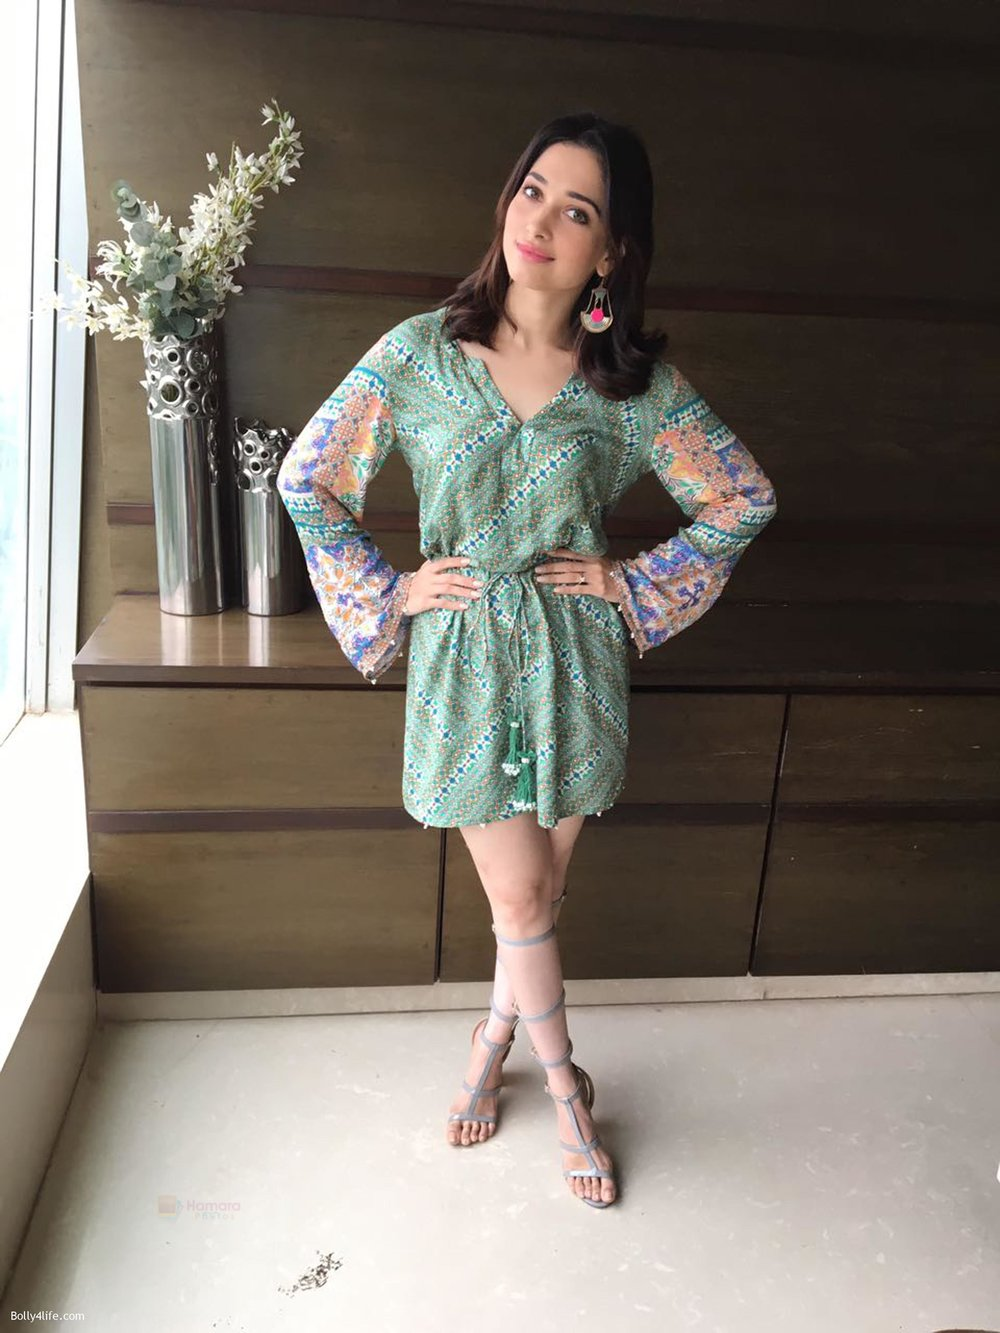 Tamannah-Bhatia-looking-ravishing-during-the-promotions-of-of-her-upcoming-film-Tutak-Tutak-Tutiya-7.jpg